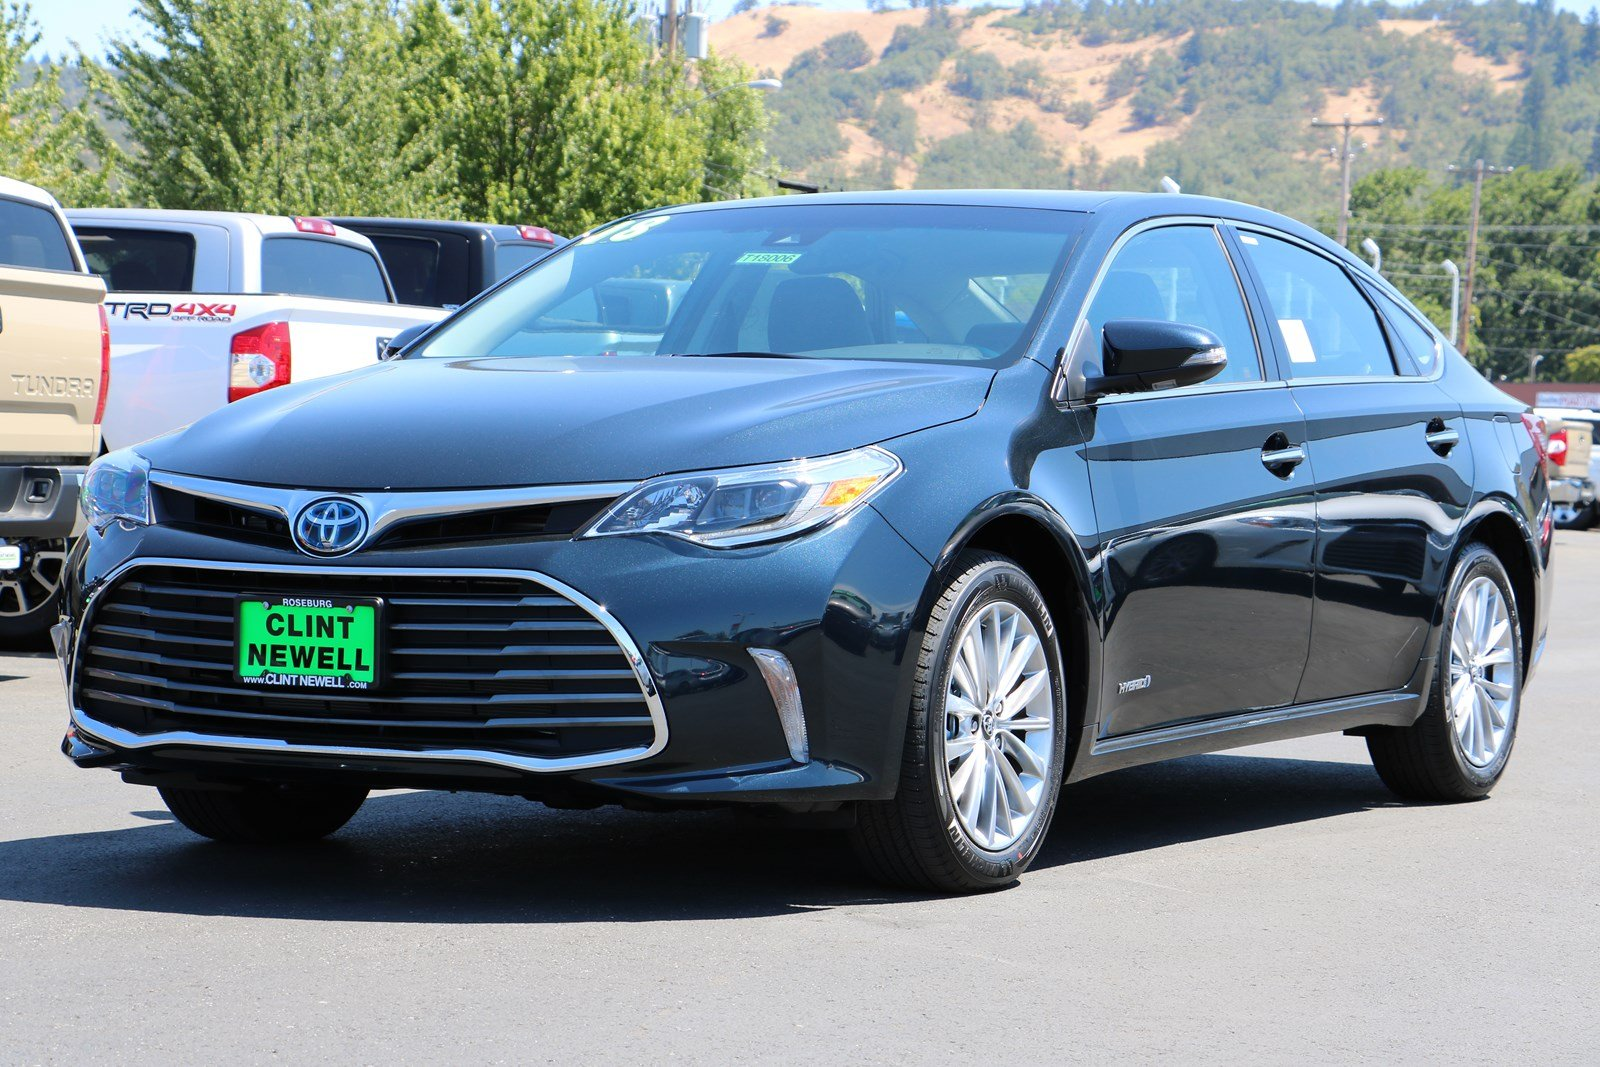 2018 toyota avalon hybrid new car release date and review 2018 amanda felicia. Black Bedroom Furniture Sets. Home Design Ideas